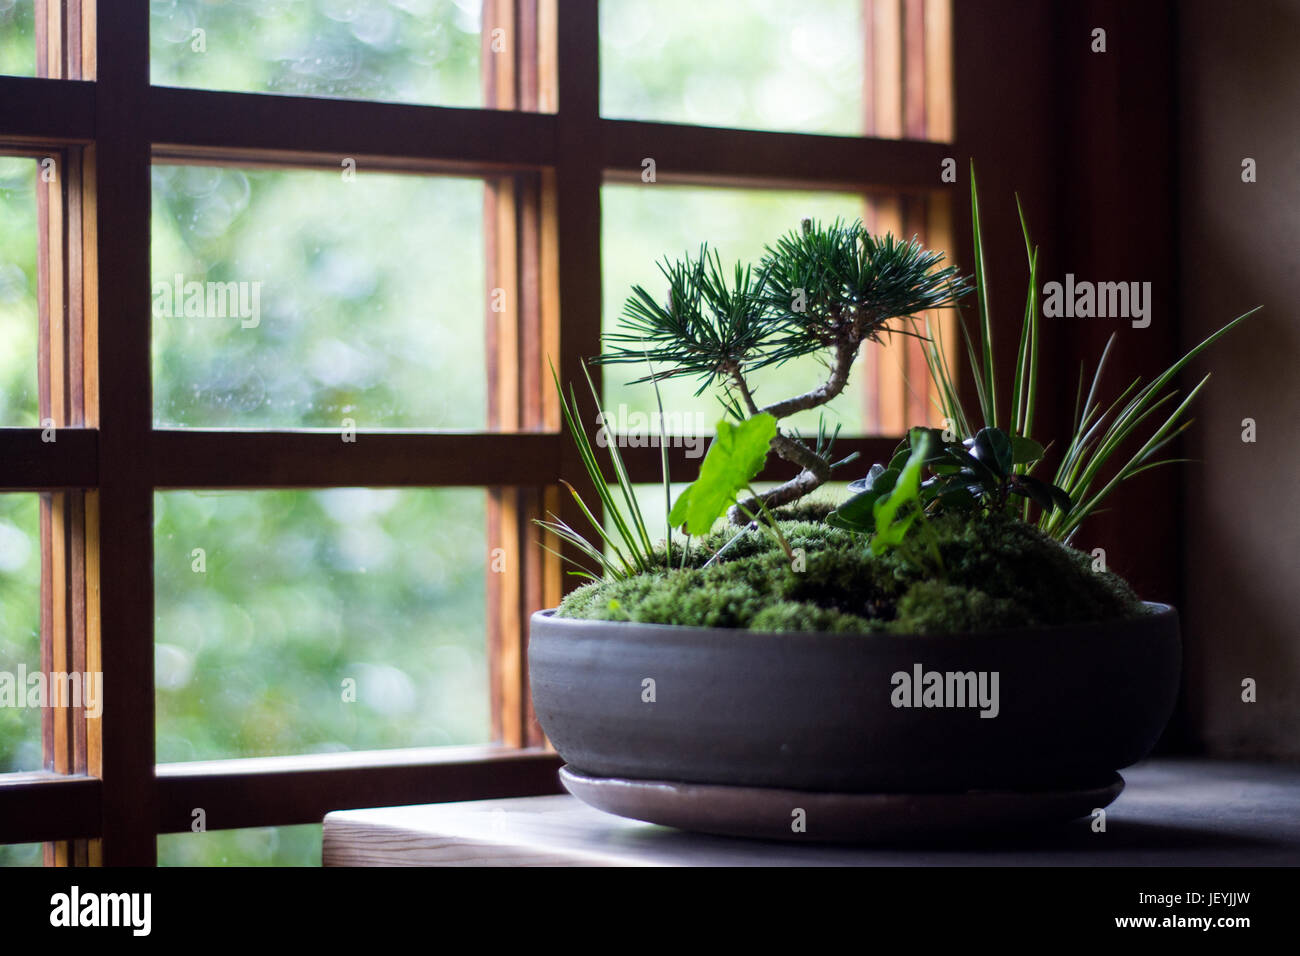 Bonsai in Daitoku-ji Buddhist temple, Kyoto, Japan - Stock Image